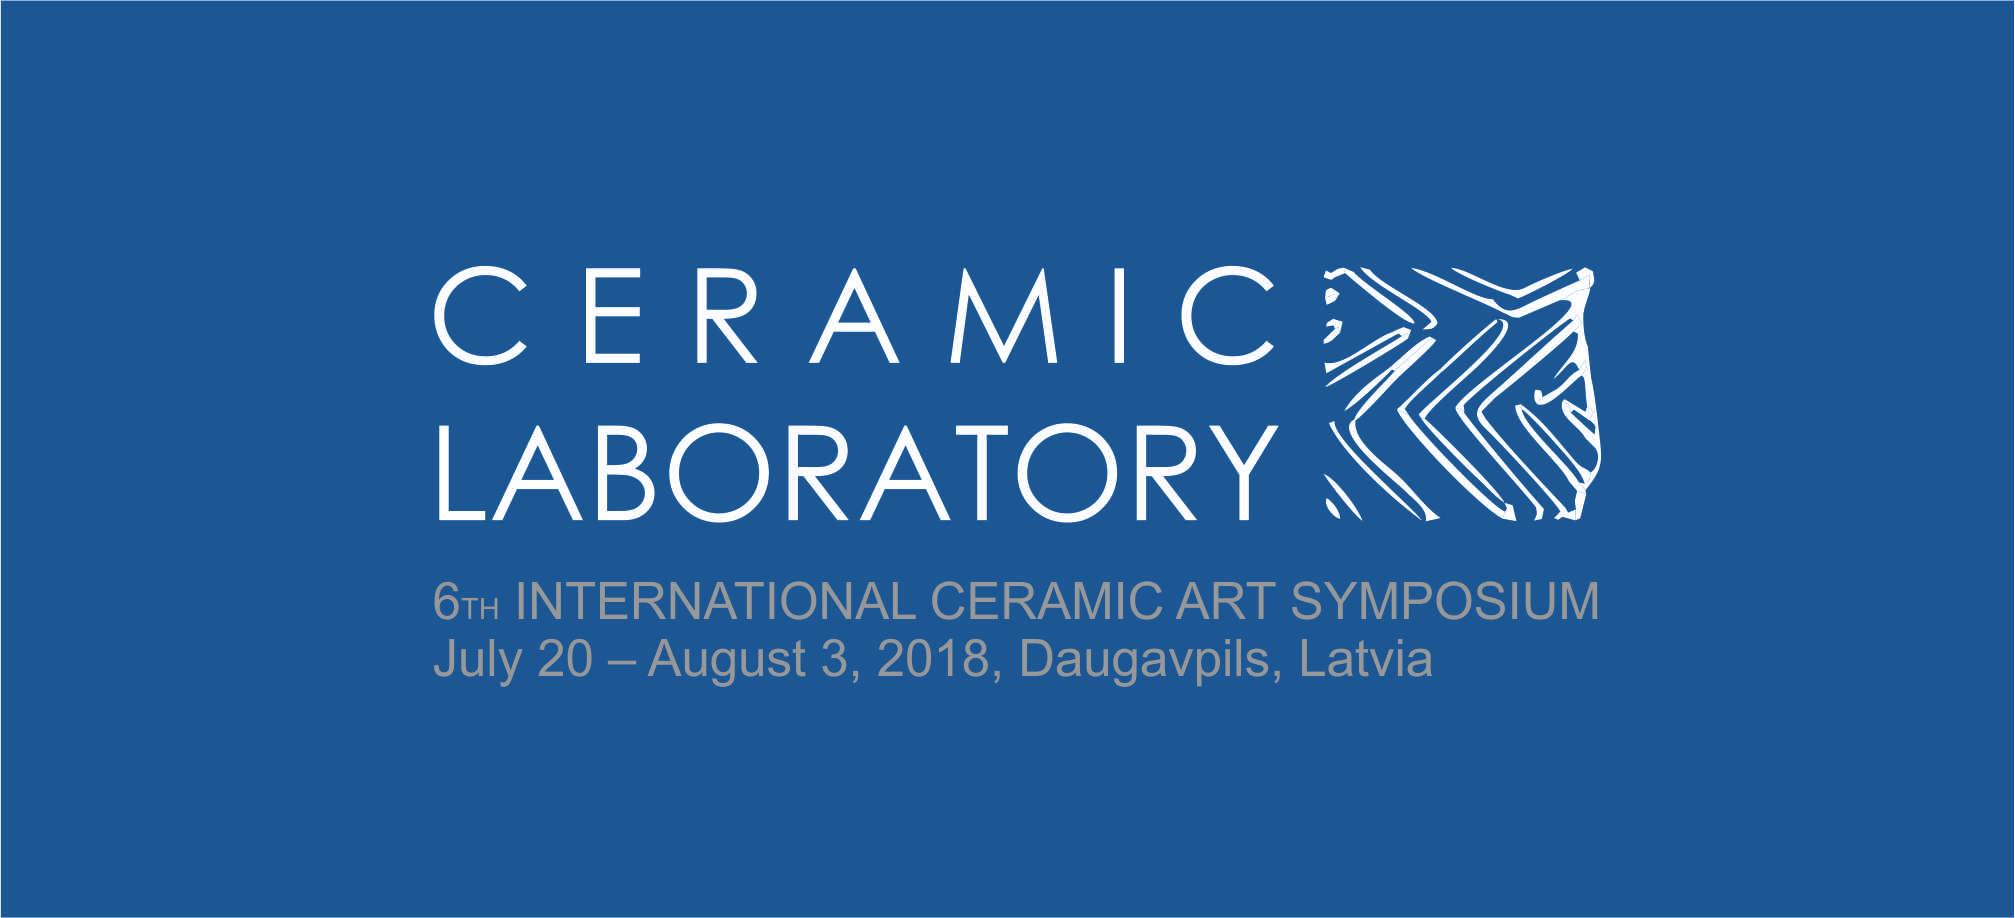 Daugavpils on the verge of an international ceramic art symposium